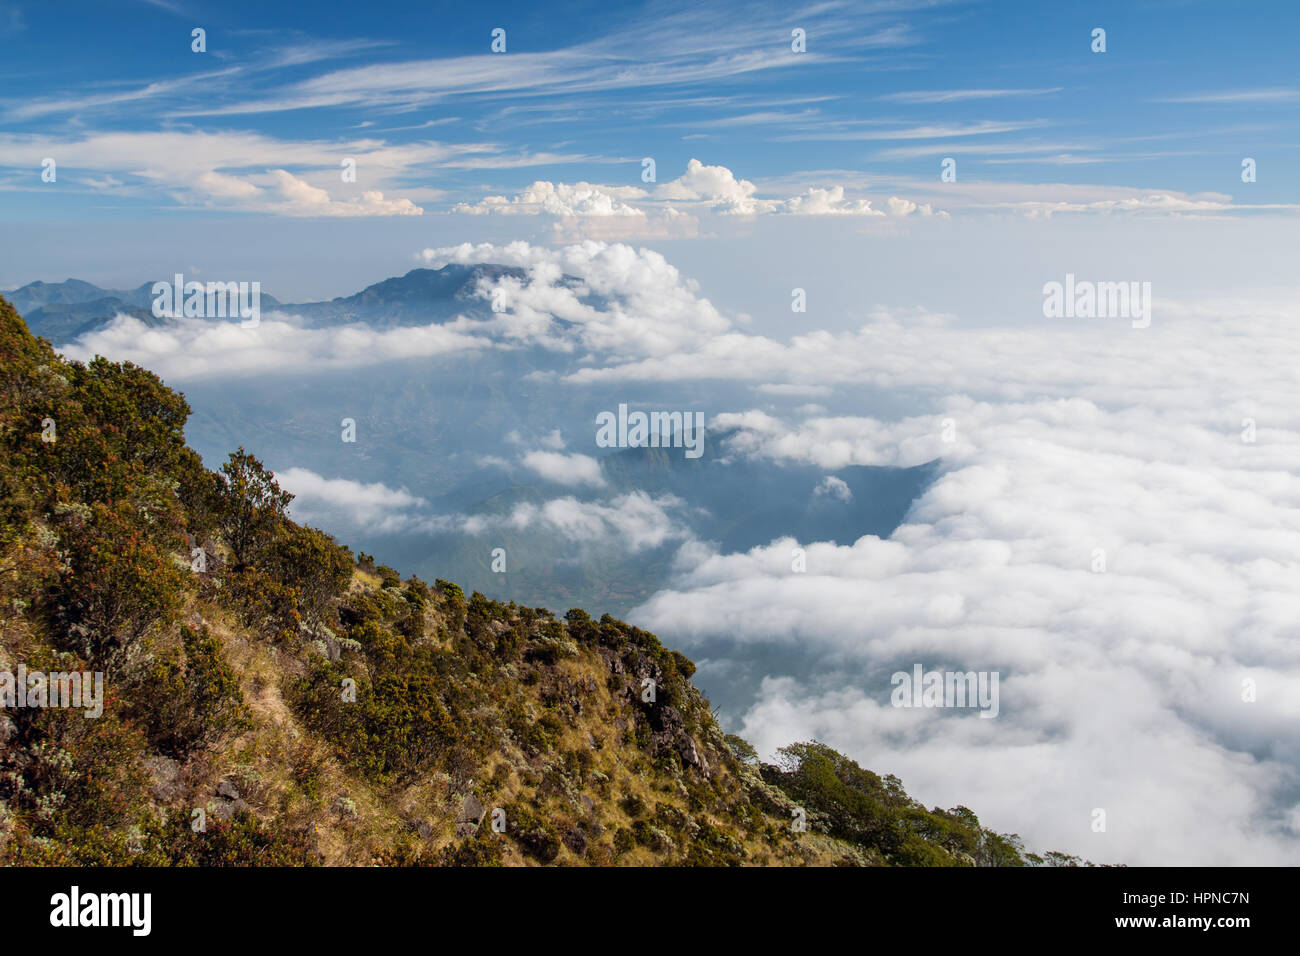 Mountain landscape with cloud cover surrounding the active volcano of Gunung Sindoro and the Dieng Plateau.  Mount - Stock Image